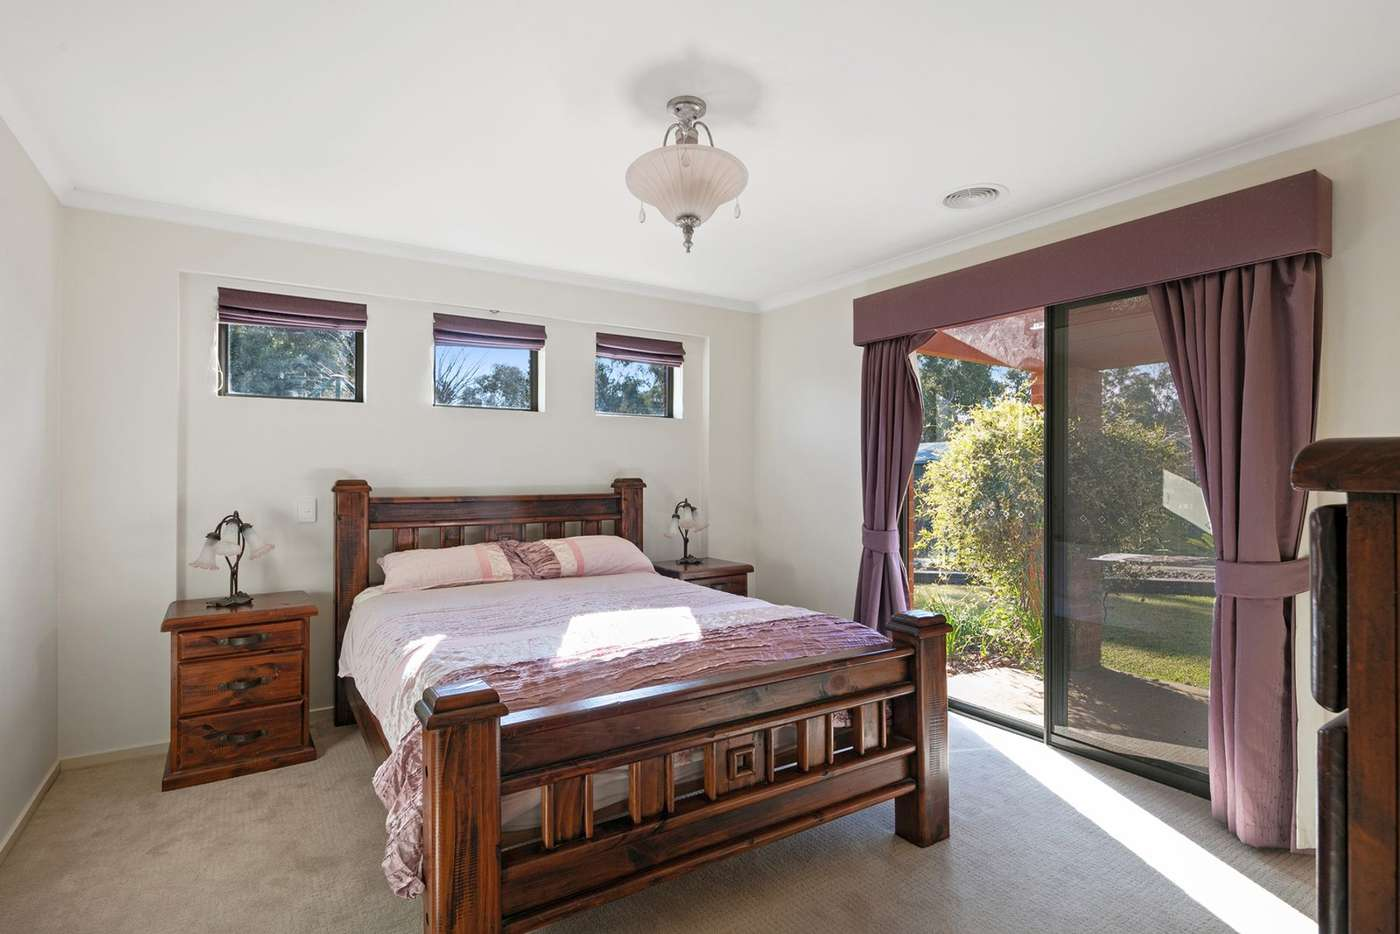 Sixth view of Homely house listing, 42 Glenelg Drive, Maiden Gully VIC 3551